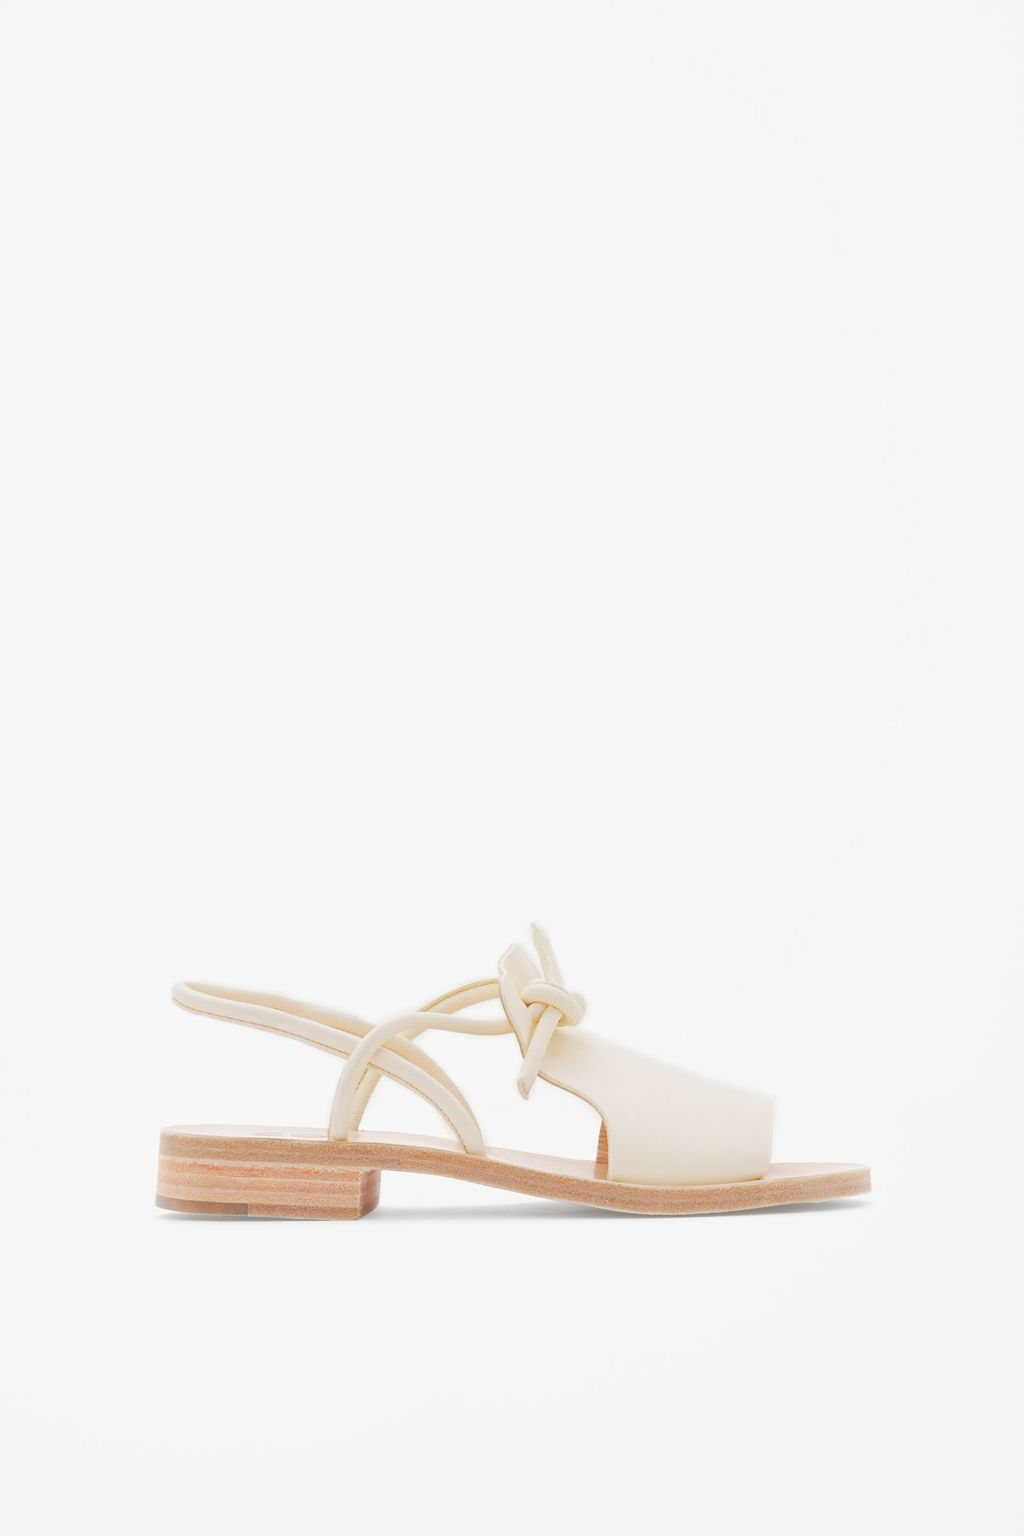 Knotted Leather Sandals - predominant colour: ivory/cream; occasions: casual, holiday; material: leather; heel height: flat; ankle detail: ankle strap; heel: block; toe: open toe/peeptoe; style: strappy; finish: plain; pattern: plain; season: s/s 2016